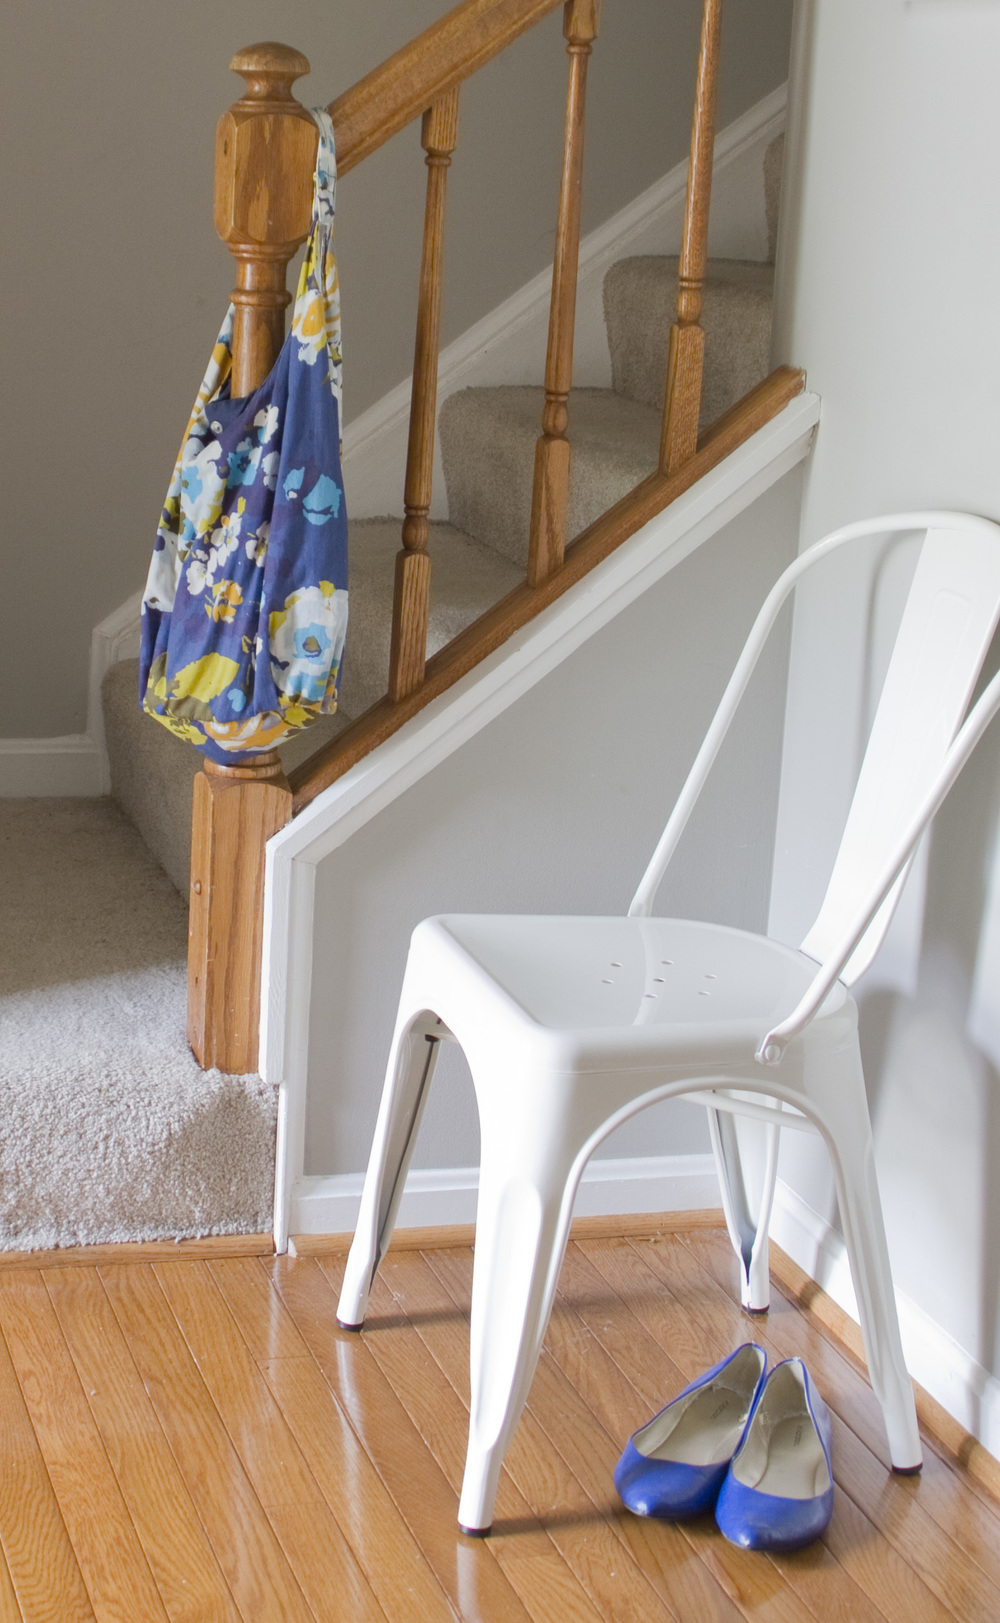 Entryway_chair2.jpg